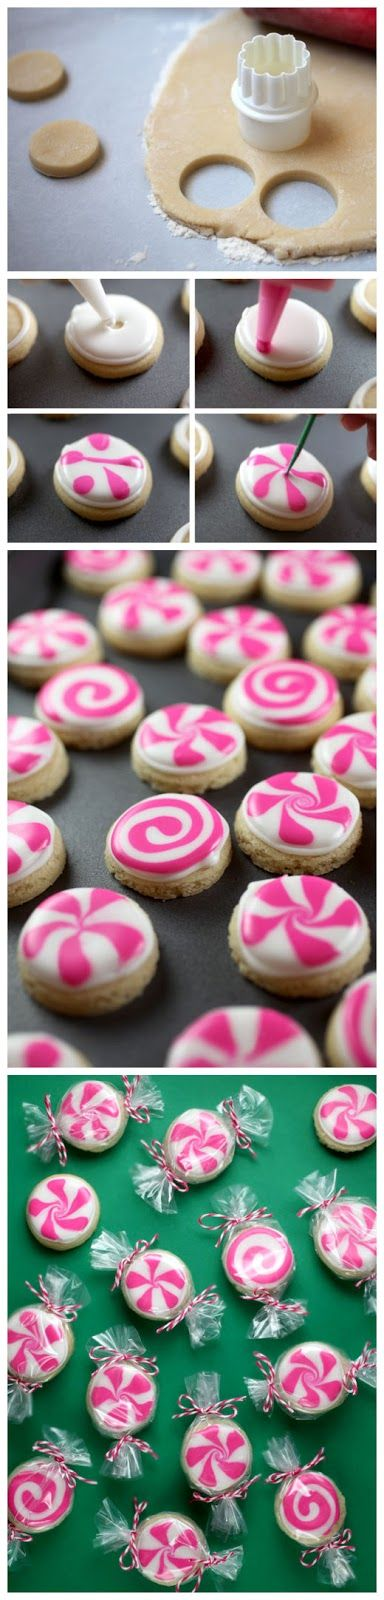 Peppermint Candy Sugar Cookies #recipe